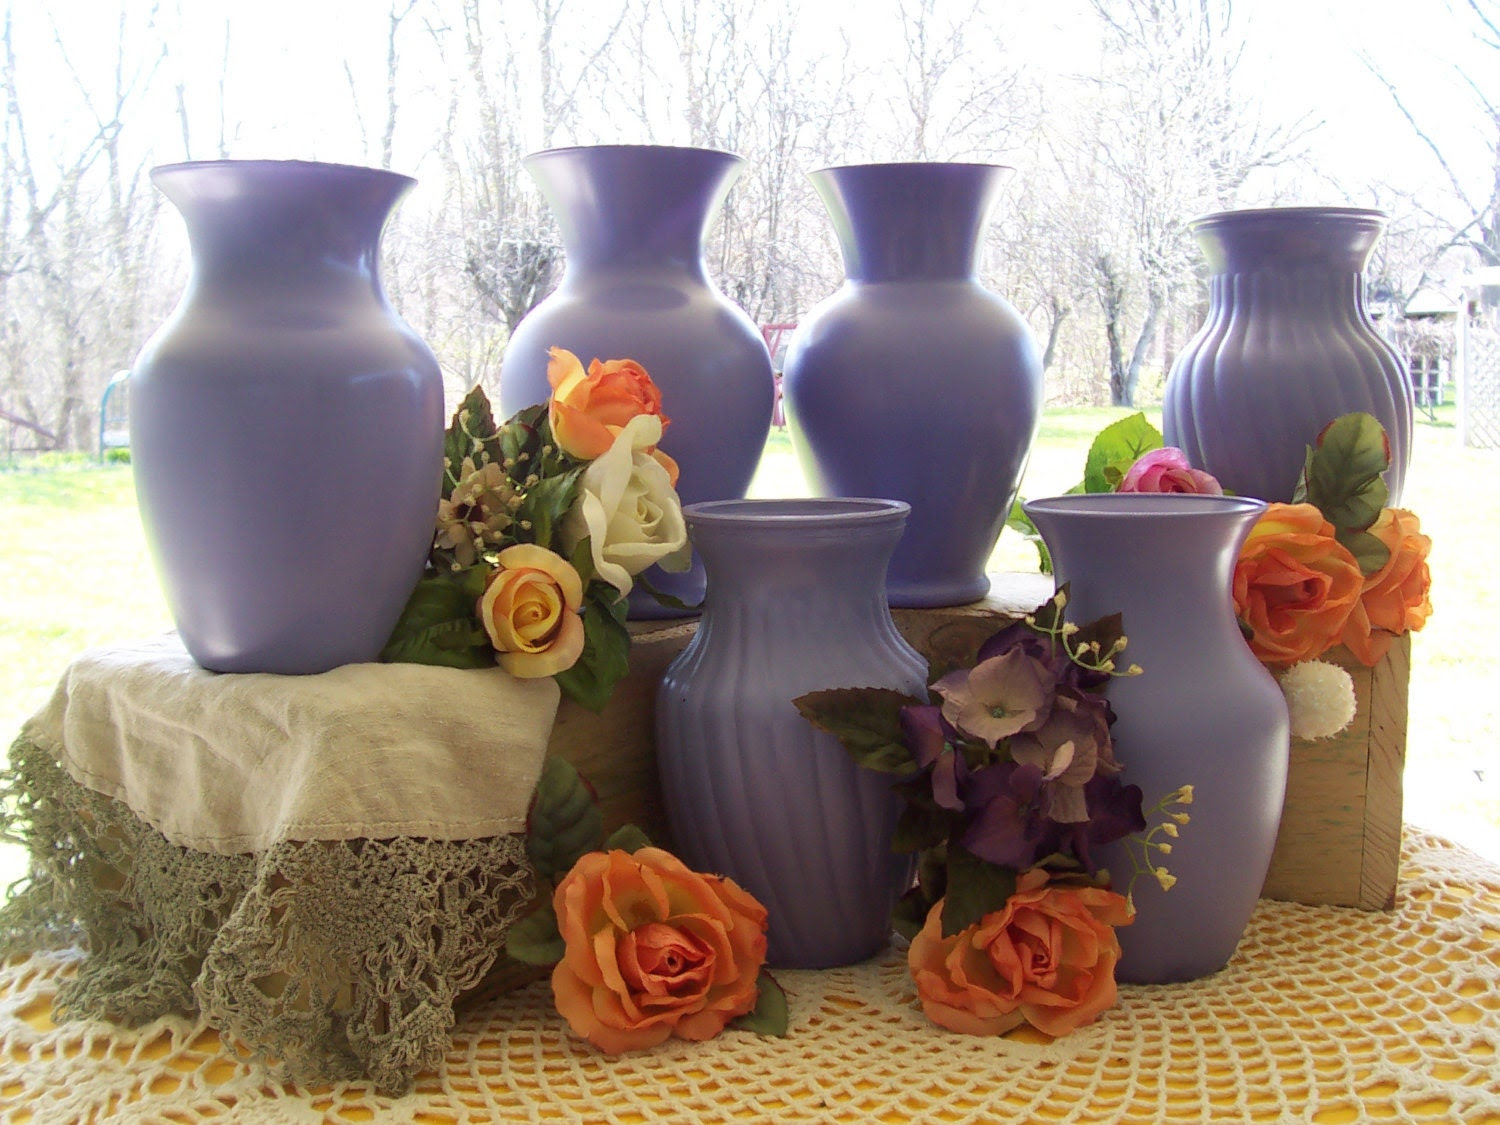 Painted Vases Table Wedding centerpiece flower 6 shabby cottage chic purple reception decorations glass country rustic vases wedding